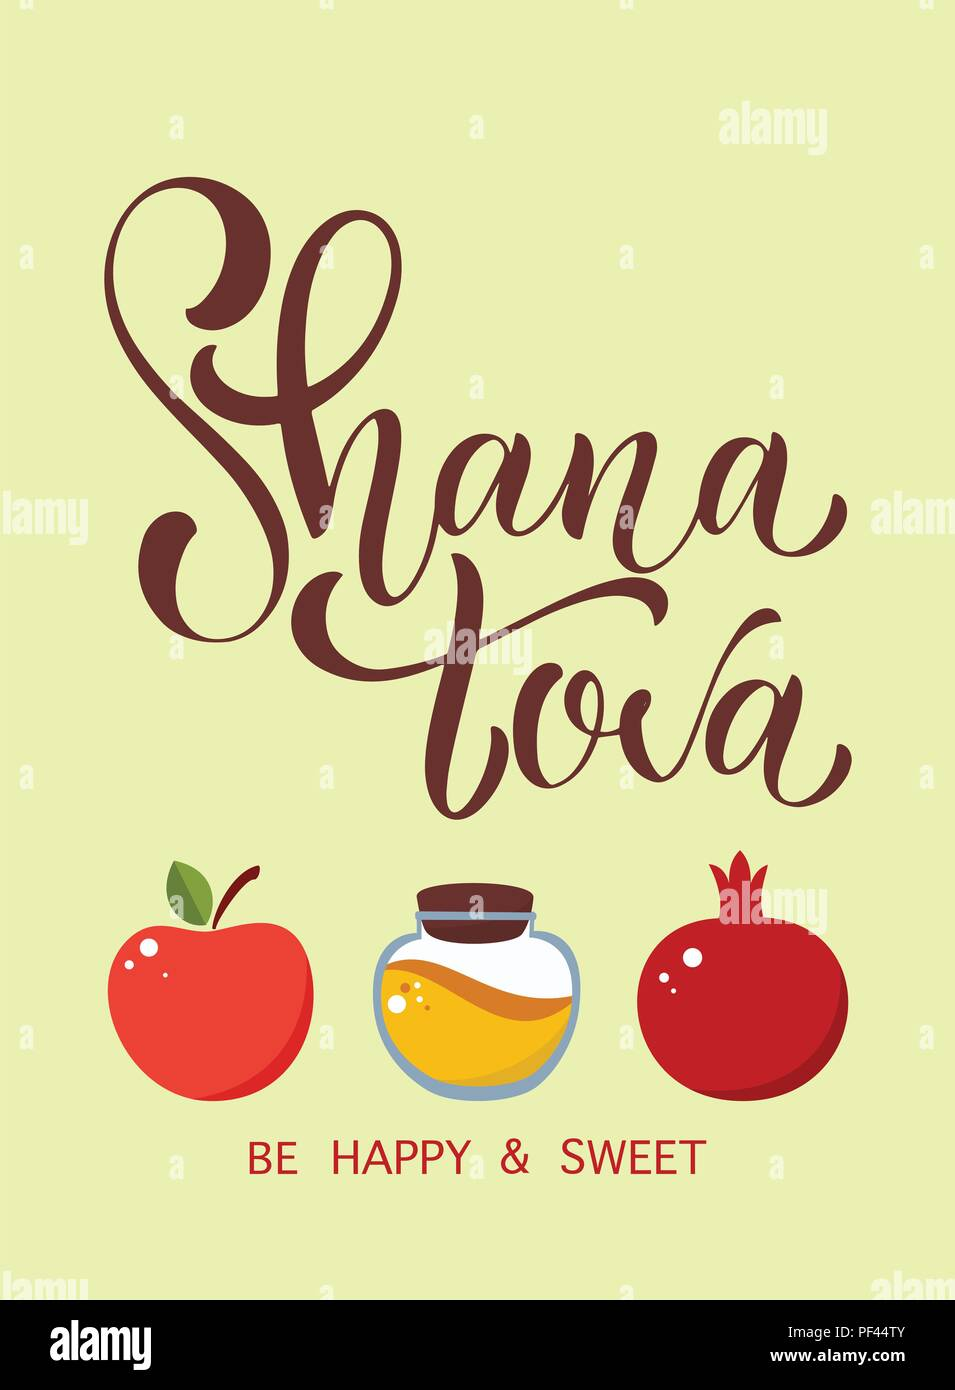 Shana tova calligraphy text for jewish new year blessing of happy shana tova calligraphy text for jewish new year blessing of happy new year elements for invitations posters greeting cards m4hsunfo